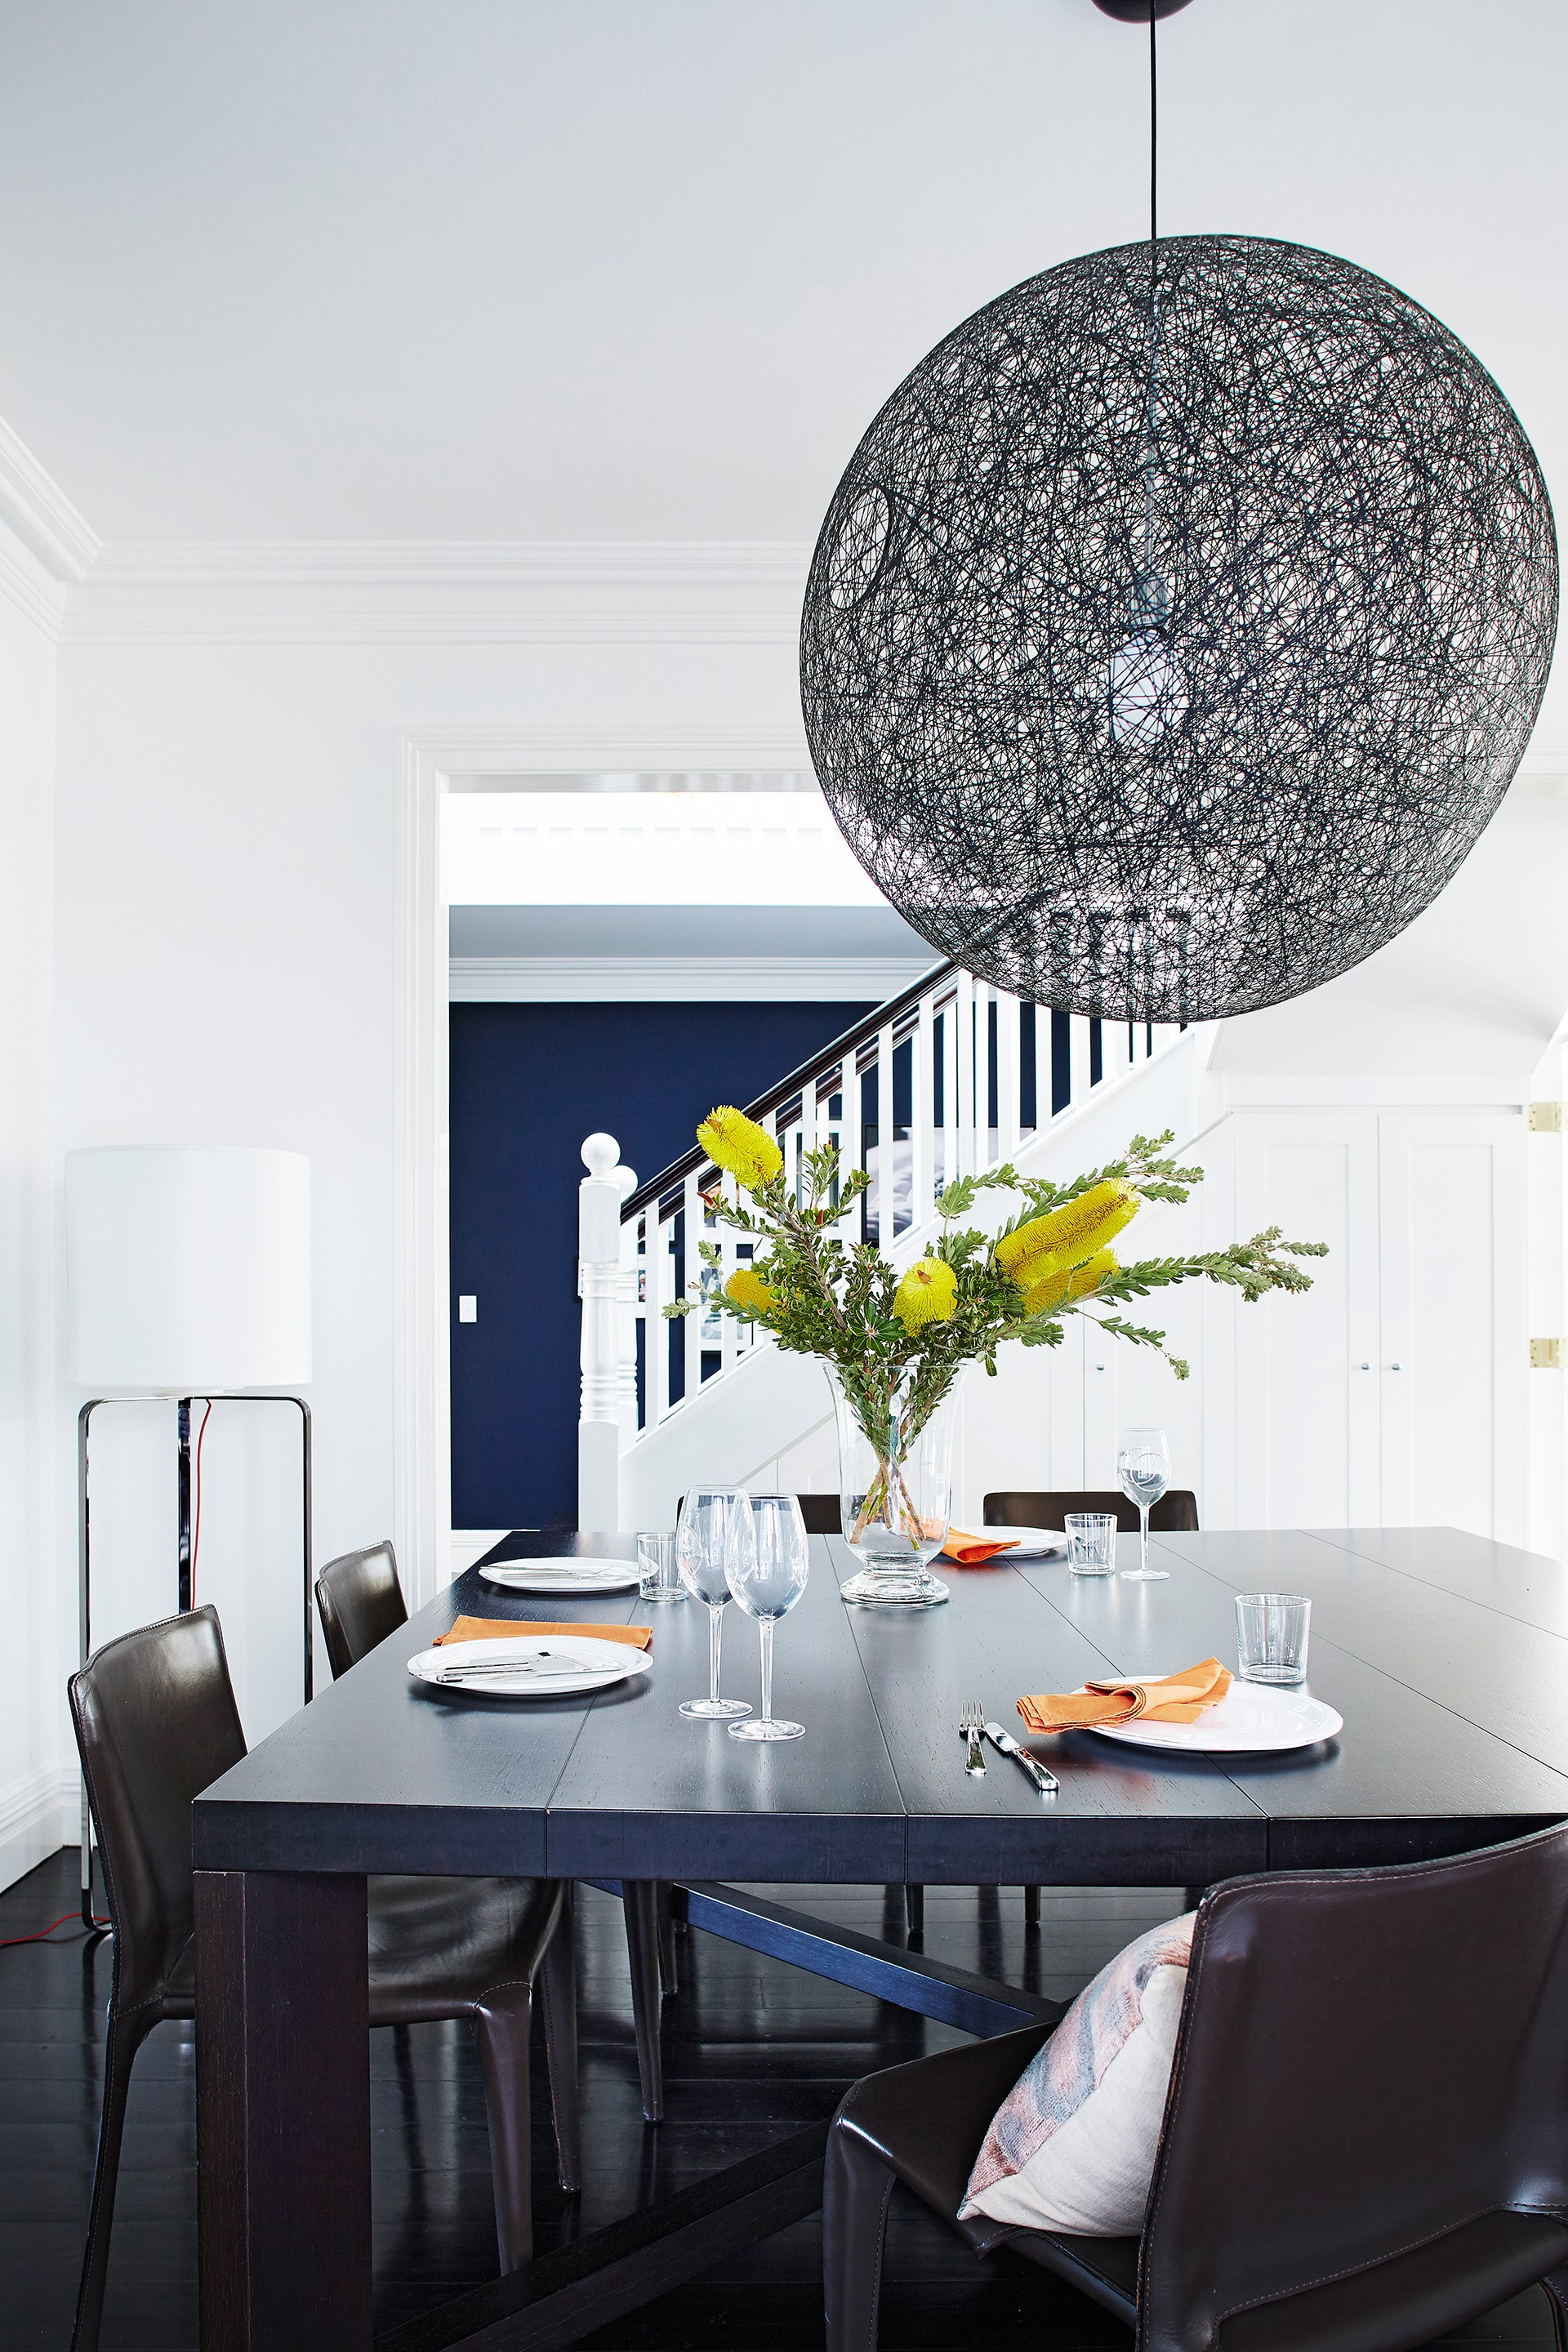 The dark dining setting brings gravitas to the white interior. Designer buy: Moooi Non Random pendant light, from $1015, [Space](http://www.spacefurniture.com.au/).